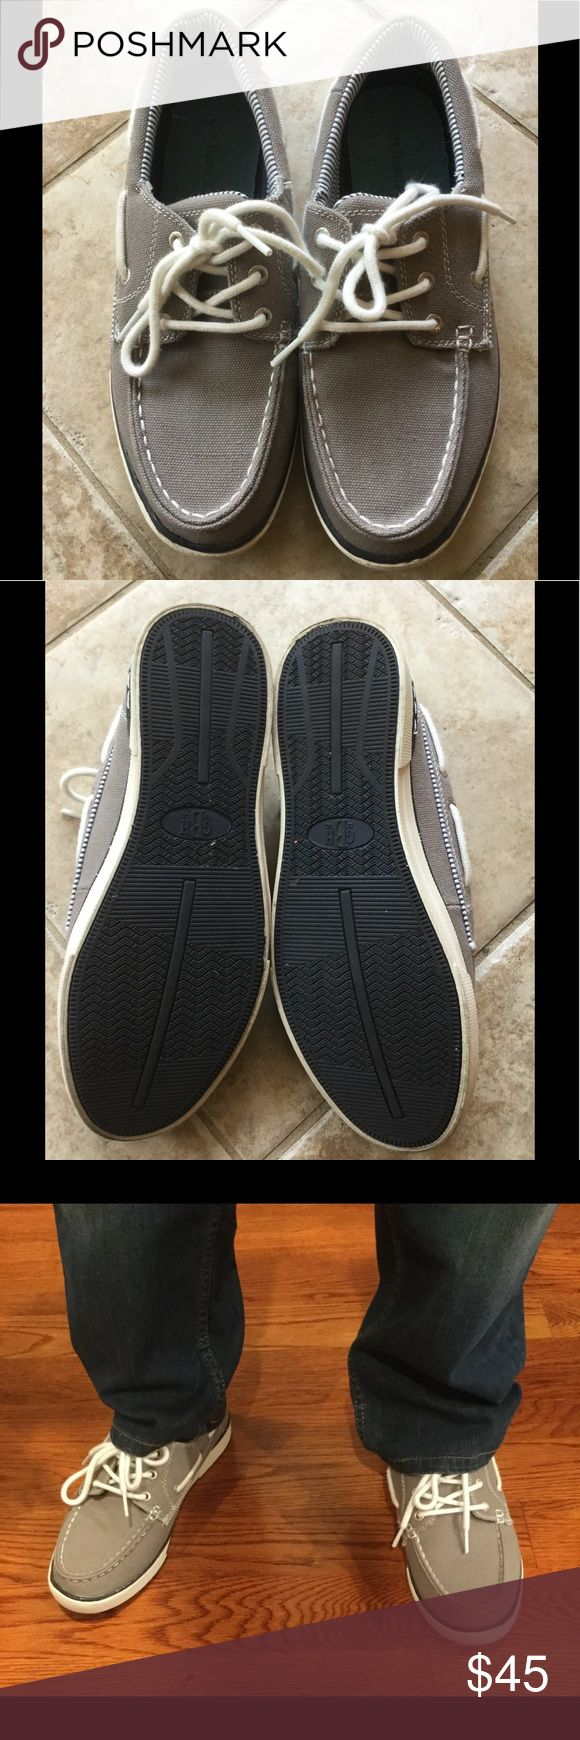 😊 G.H. Bass & CO. MENS canvas shoes😊 These are great canvas boat shoes...white and grey detail...tie front w nice white stitching..so gently worn..excellent condition 👍🏻 G.H. Bass & Co. Shoes Boat Shoes